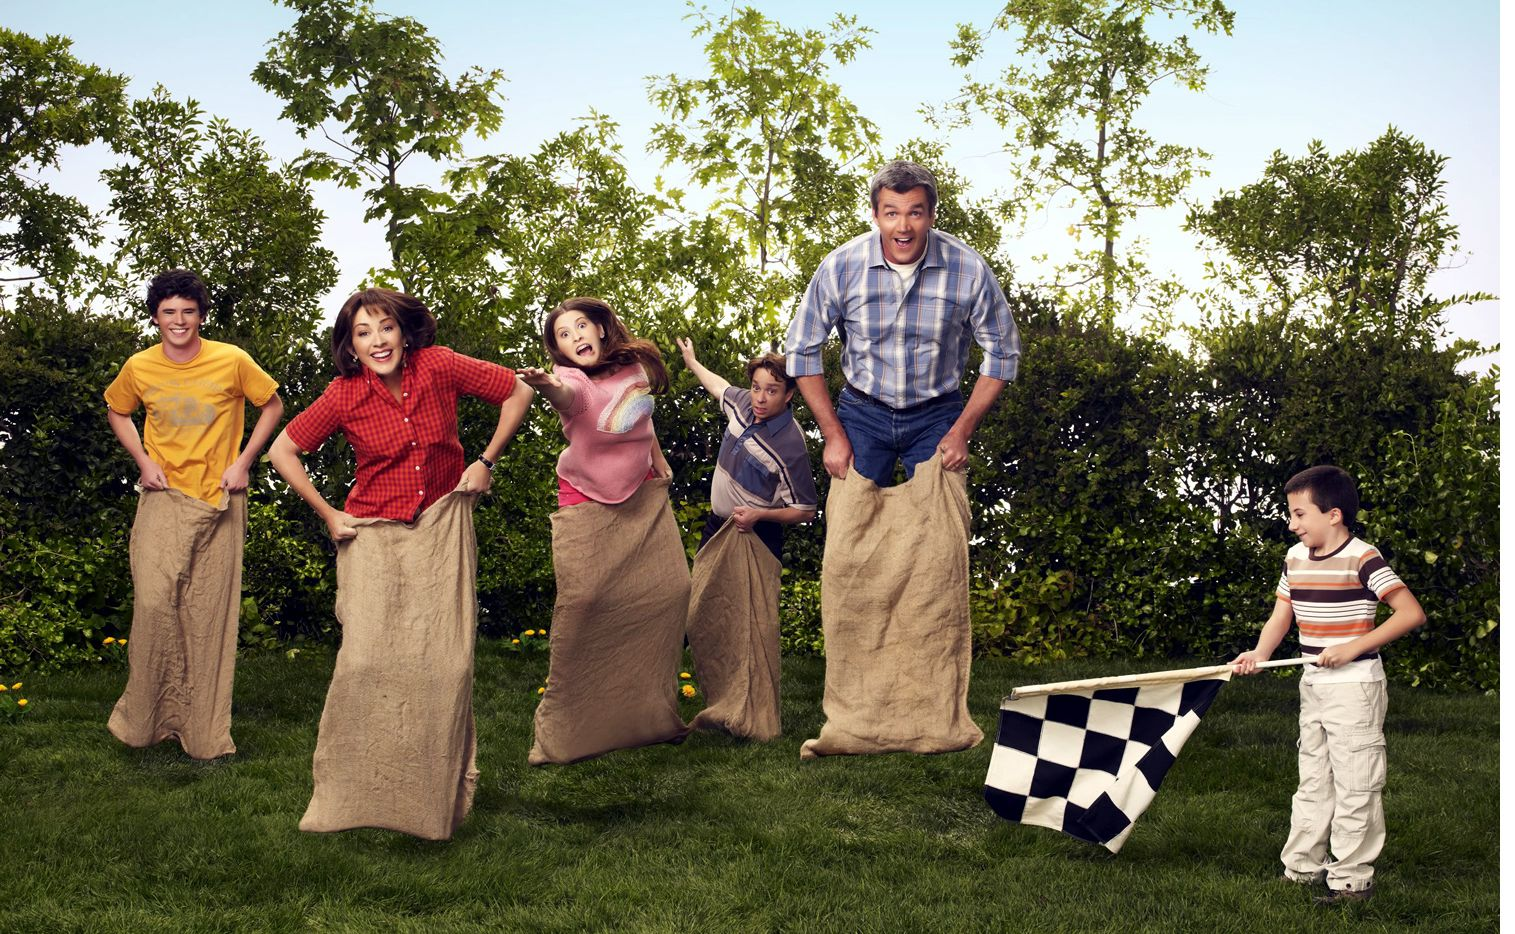 El episodio final de The Middle se vio en Estados Unidos el 22 de mayo./ AGENCIA REFORMA